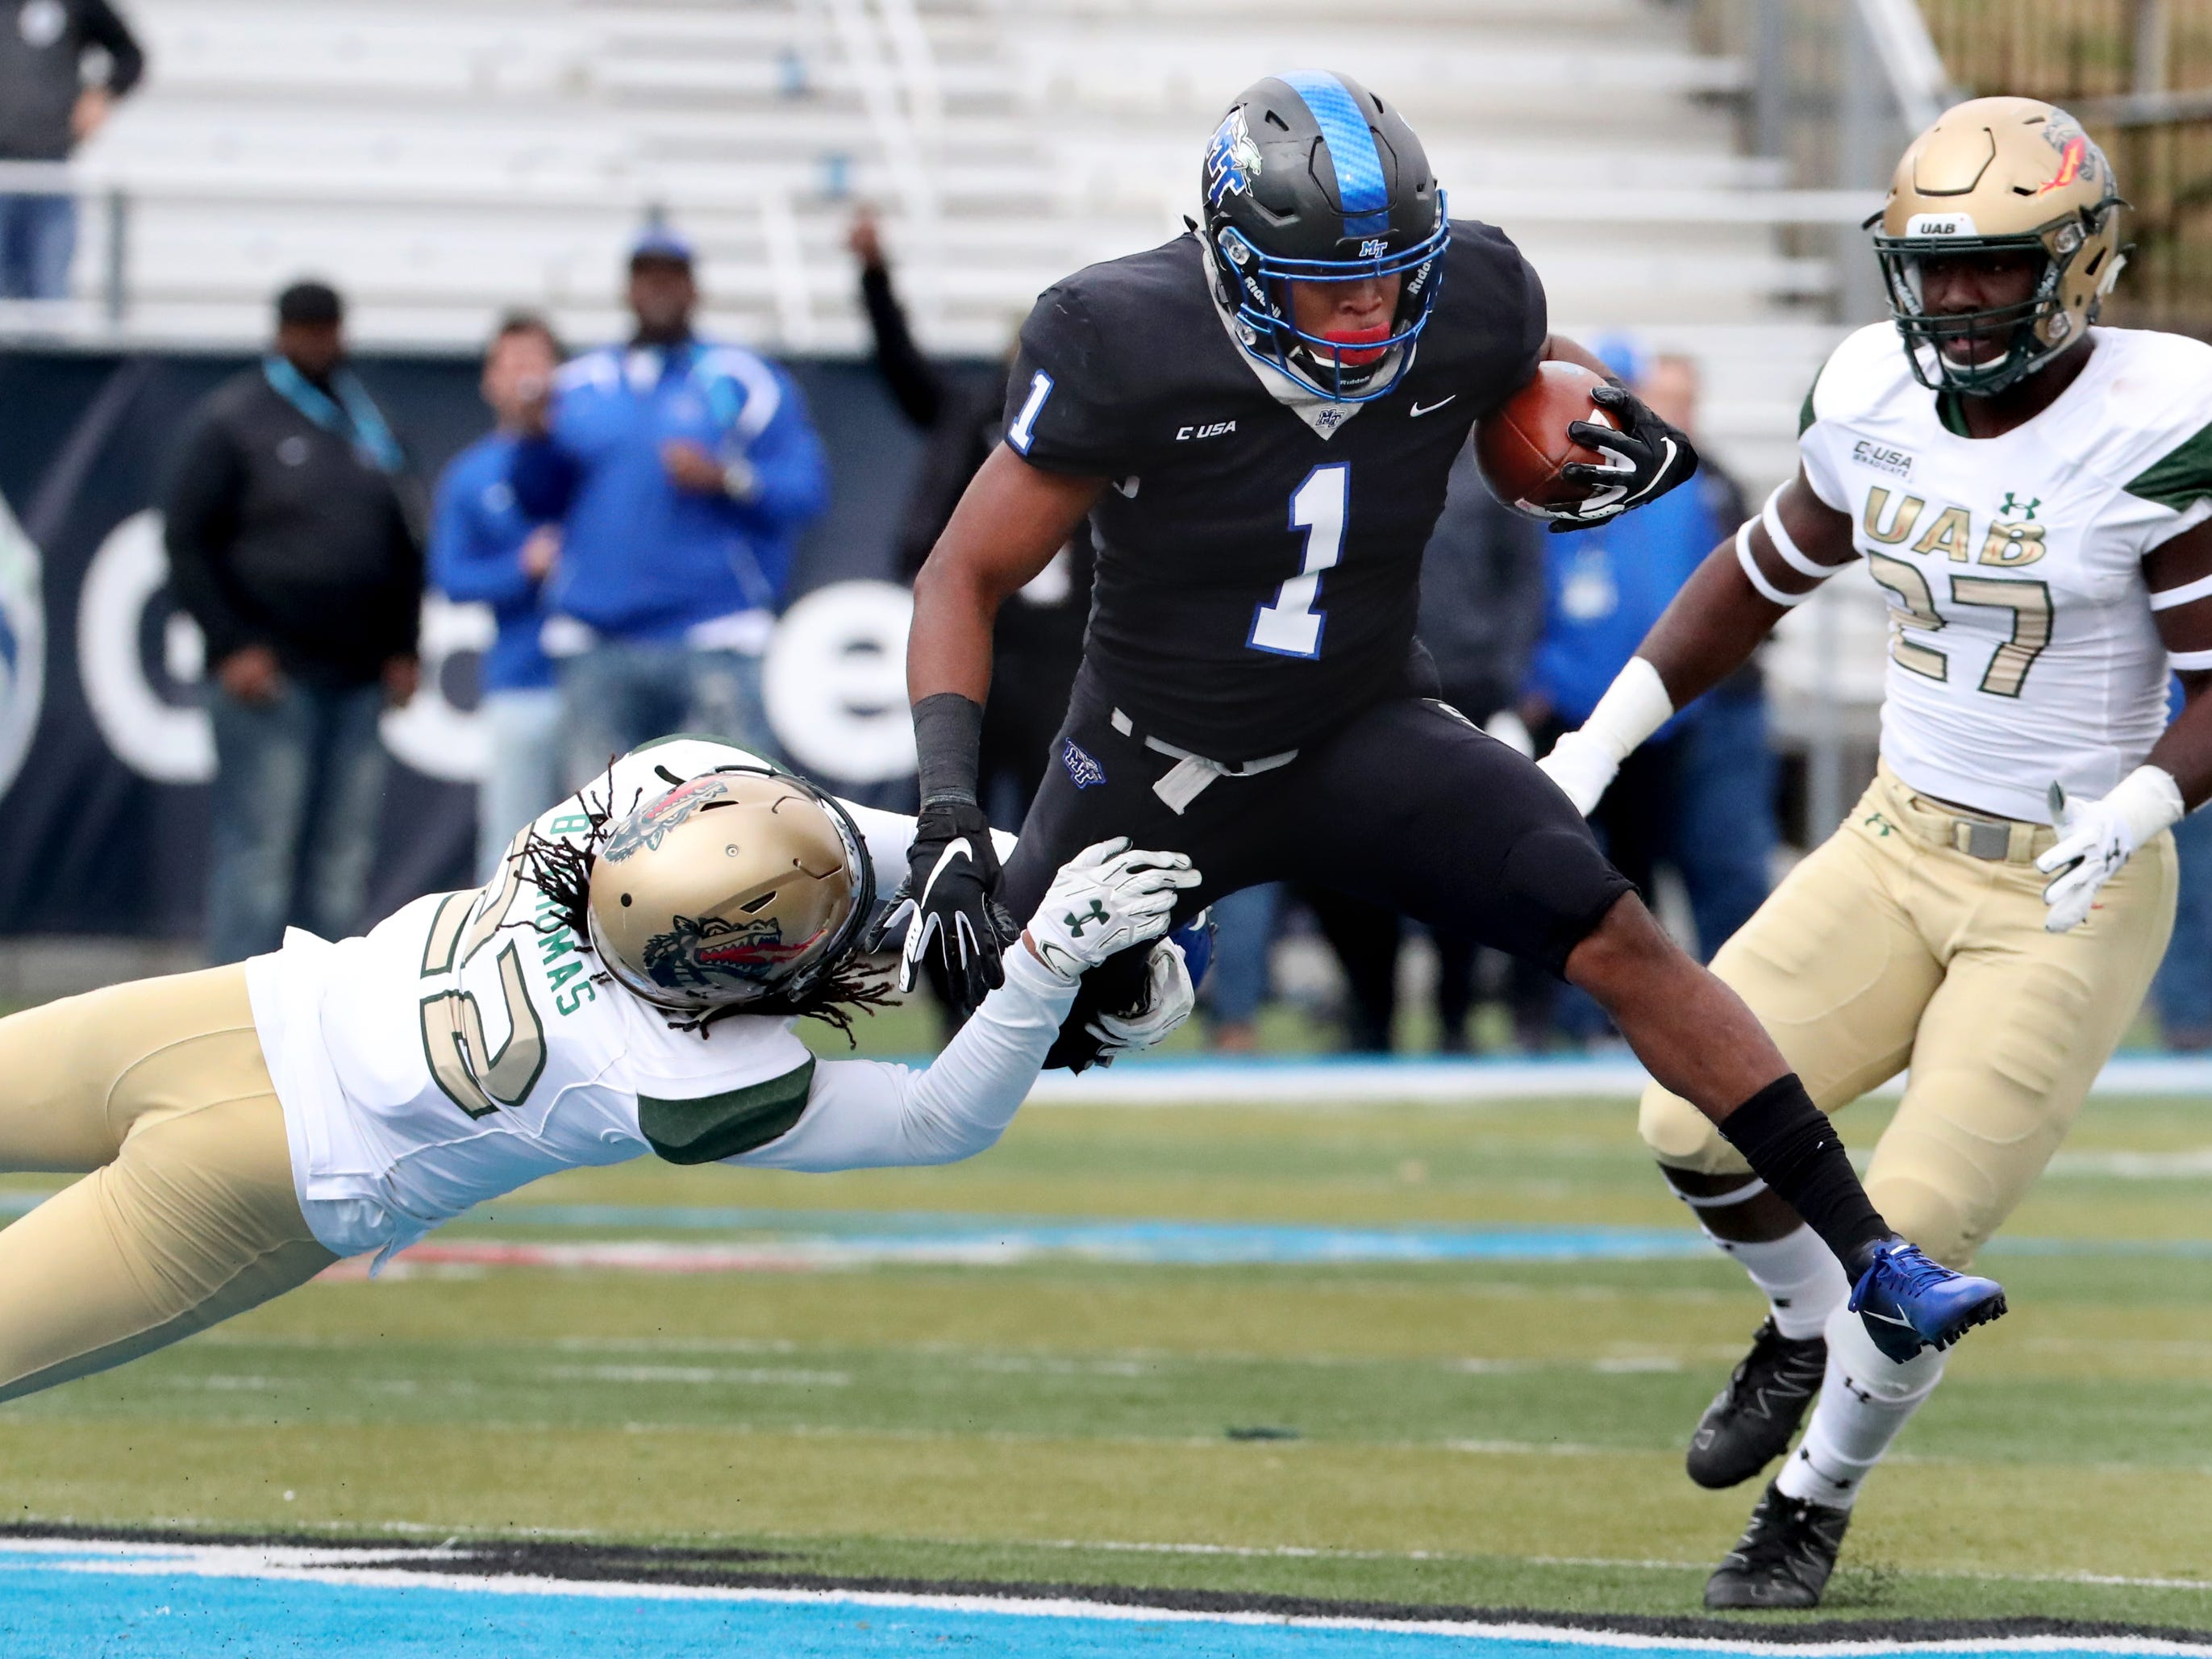 MTSU's running back Terelle West (1) runs the ball as he shakes off a tackled by UAB's safety Broderick Thomas (22) during the Conference USA Championship at MTSU on Saturday, Dec. 1, 2018.